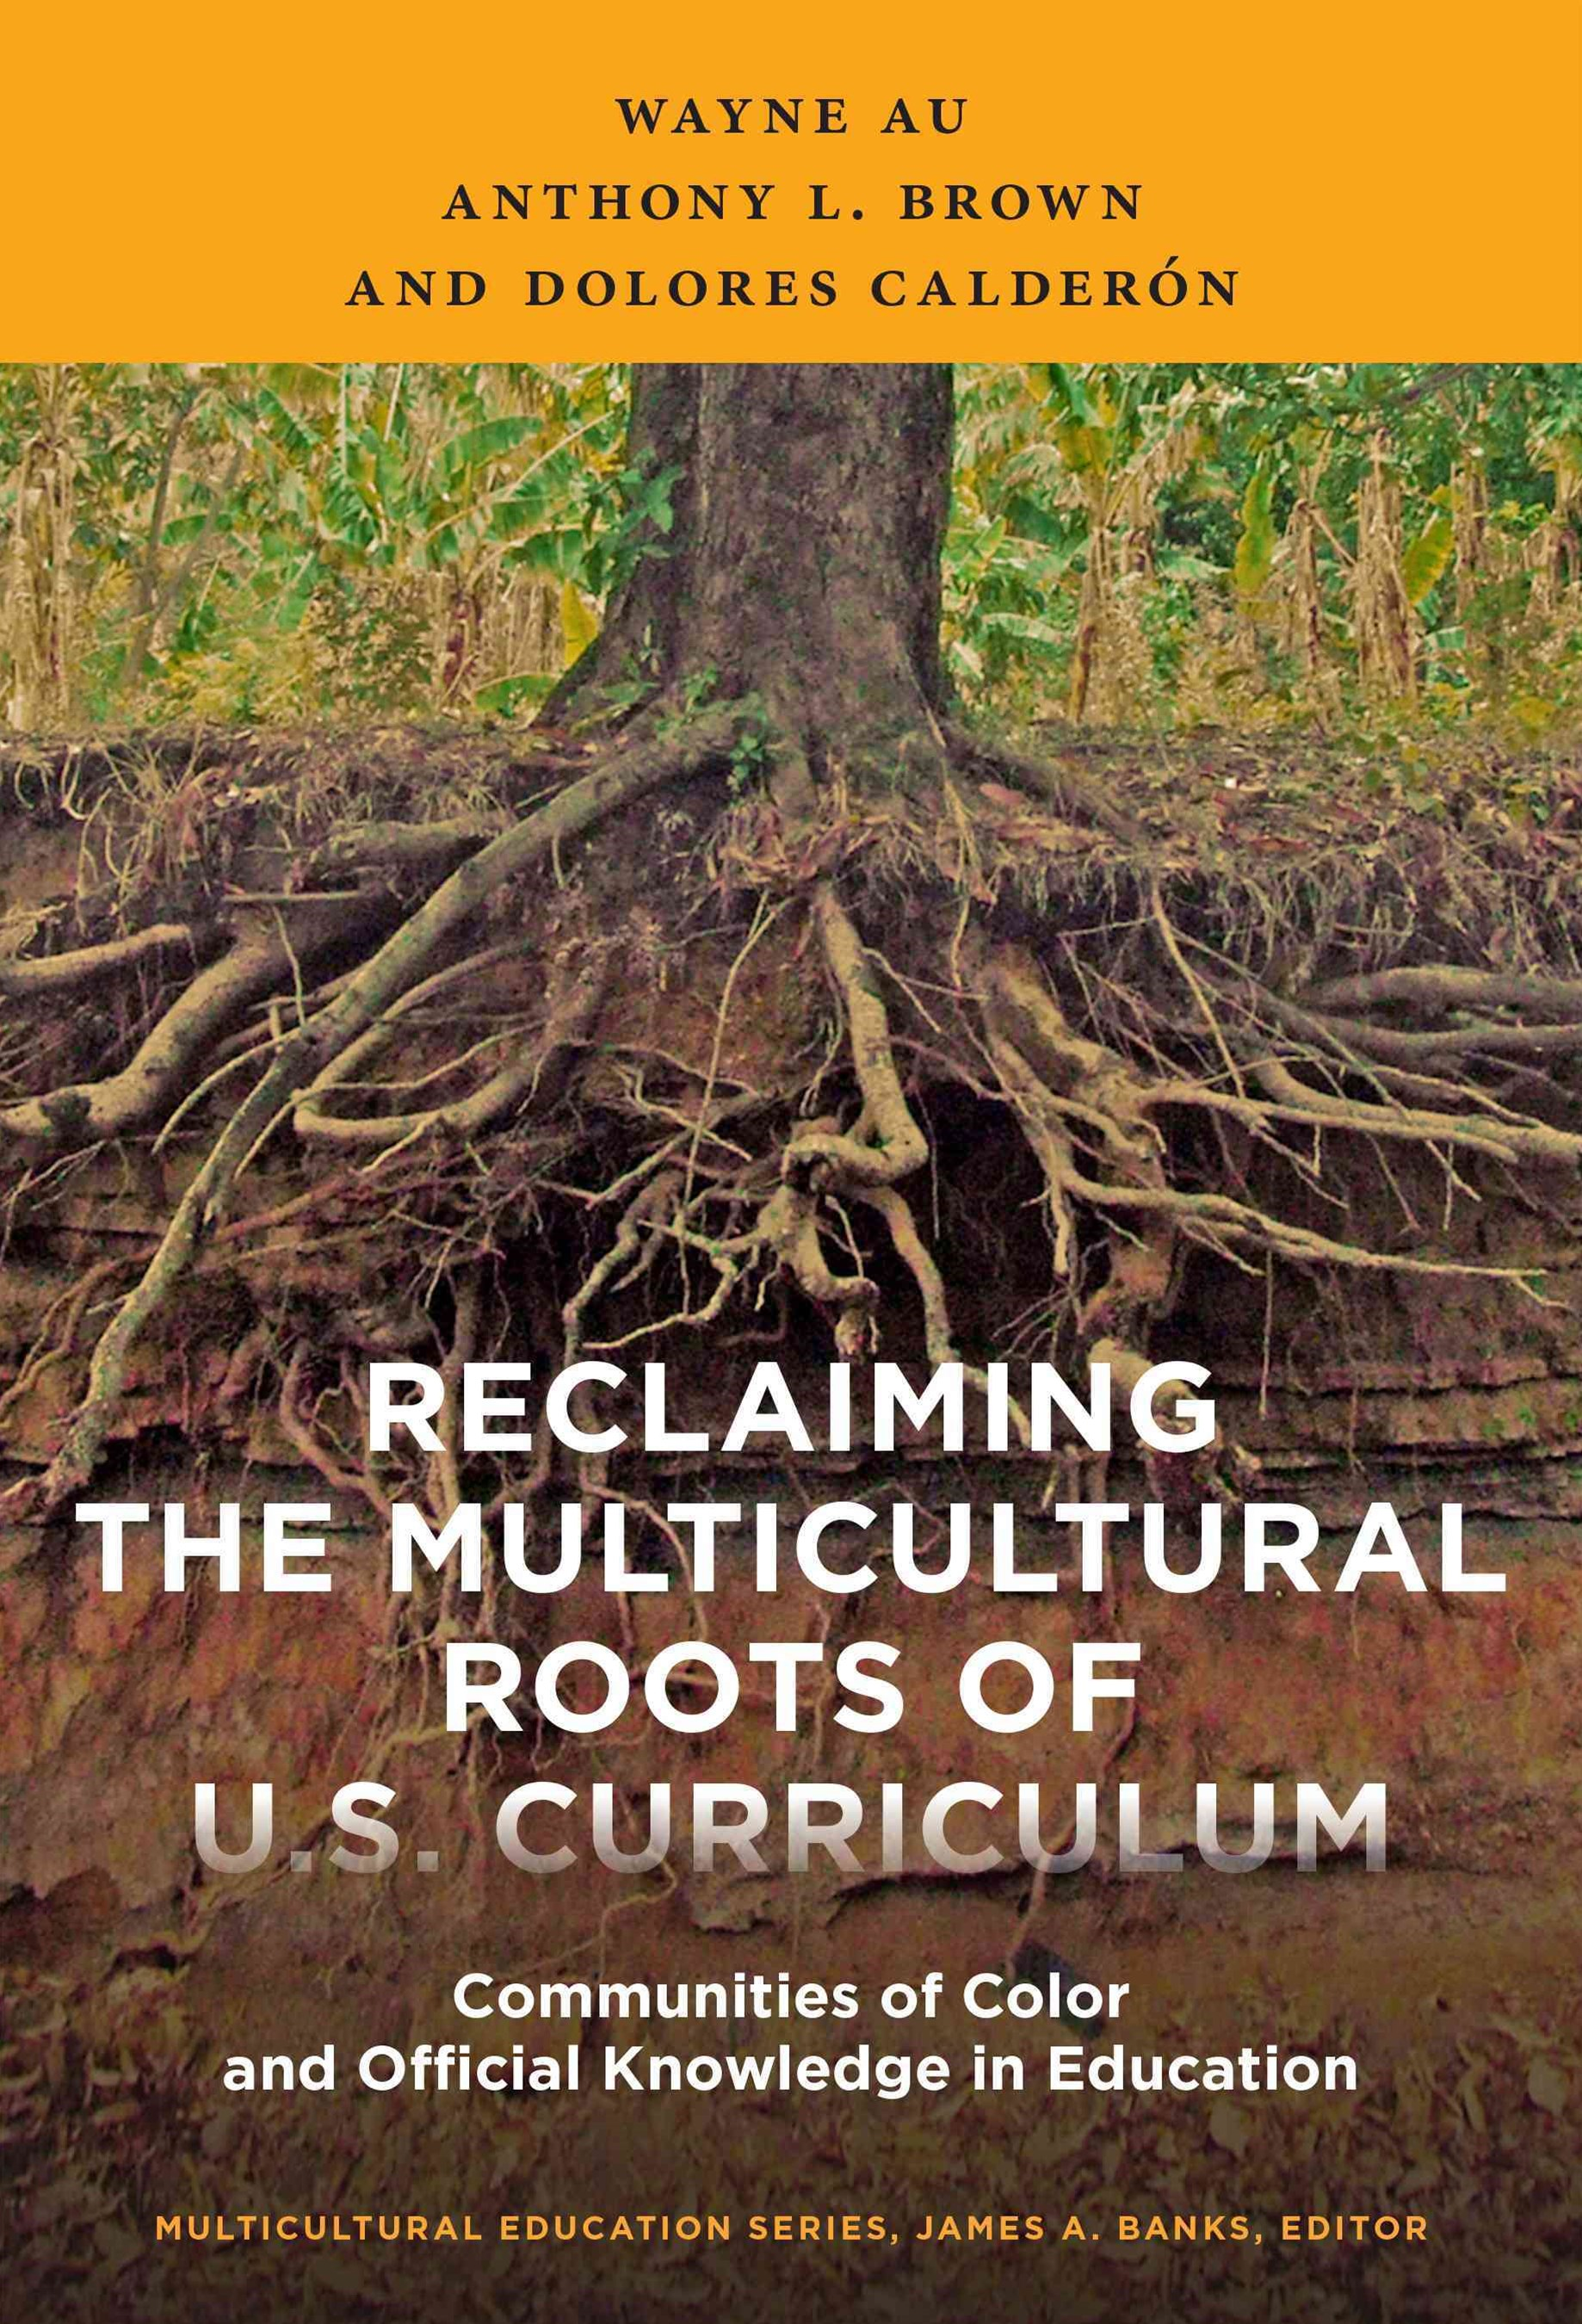 Reclaiming the Multicultural Roots of U. S. Curriculum